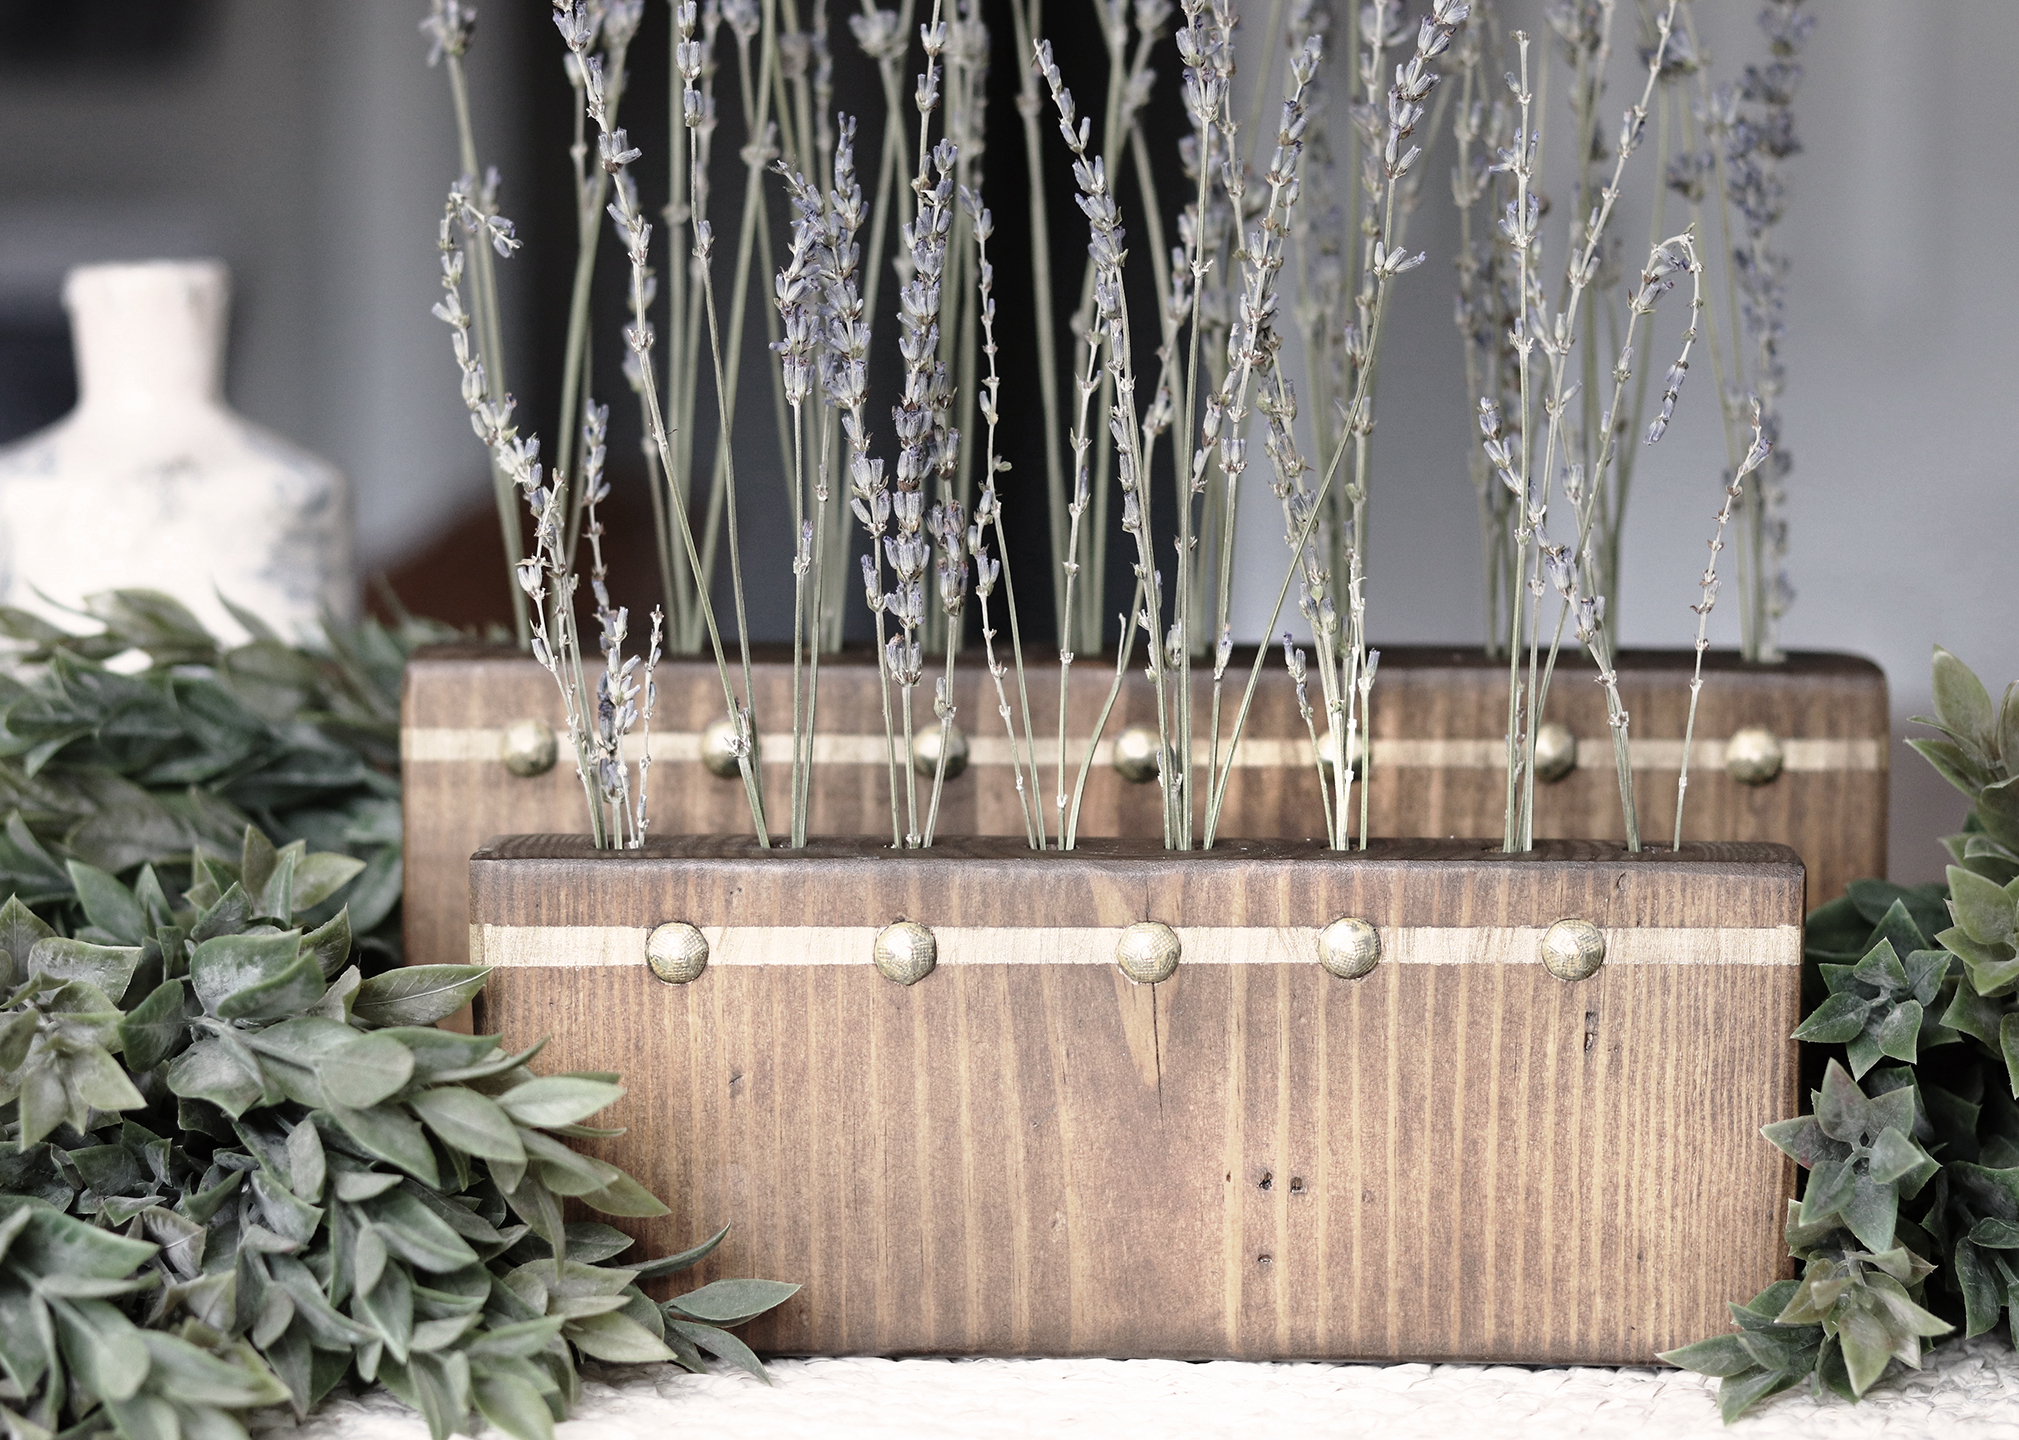 Boroughfare Home Vintage Lavender Set with Antique Gold Trim and Tacks with Greenery